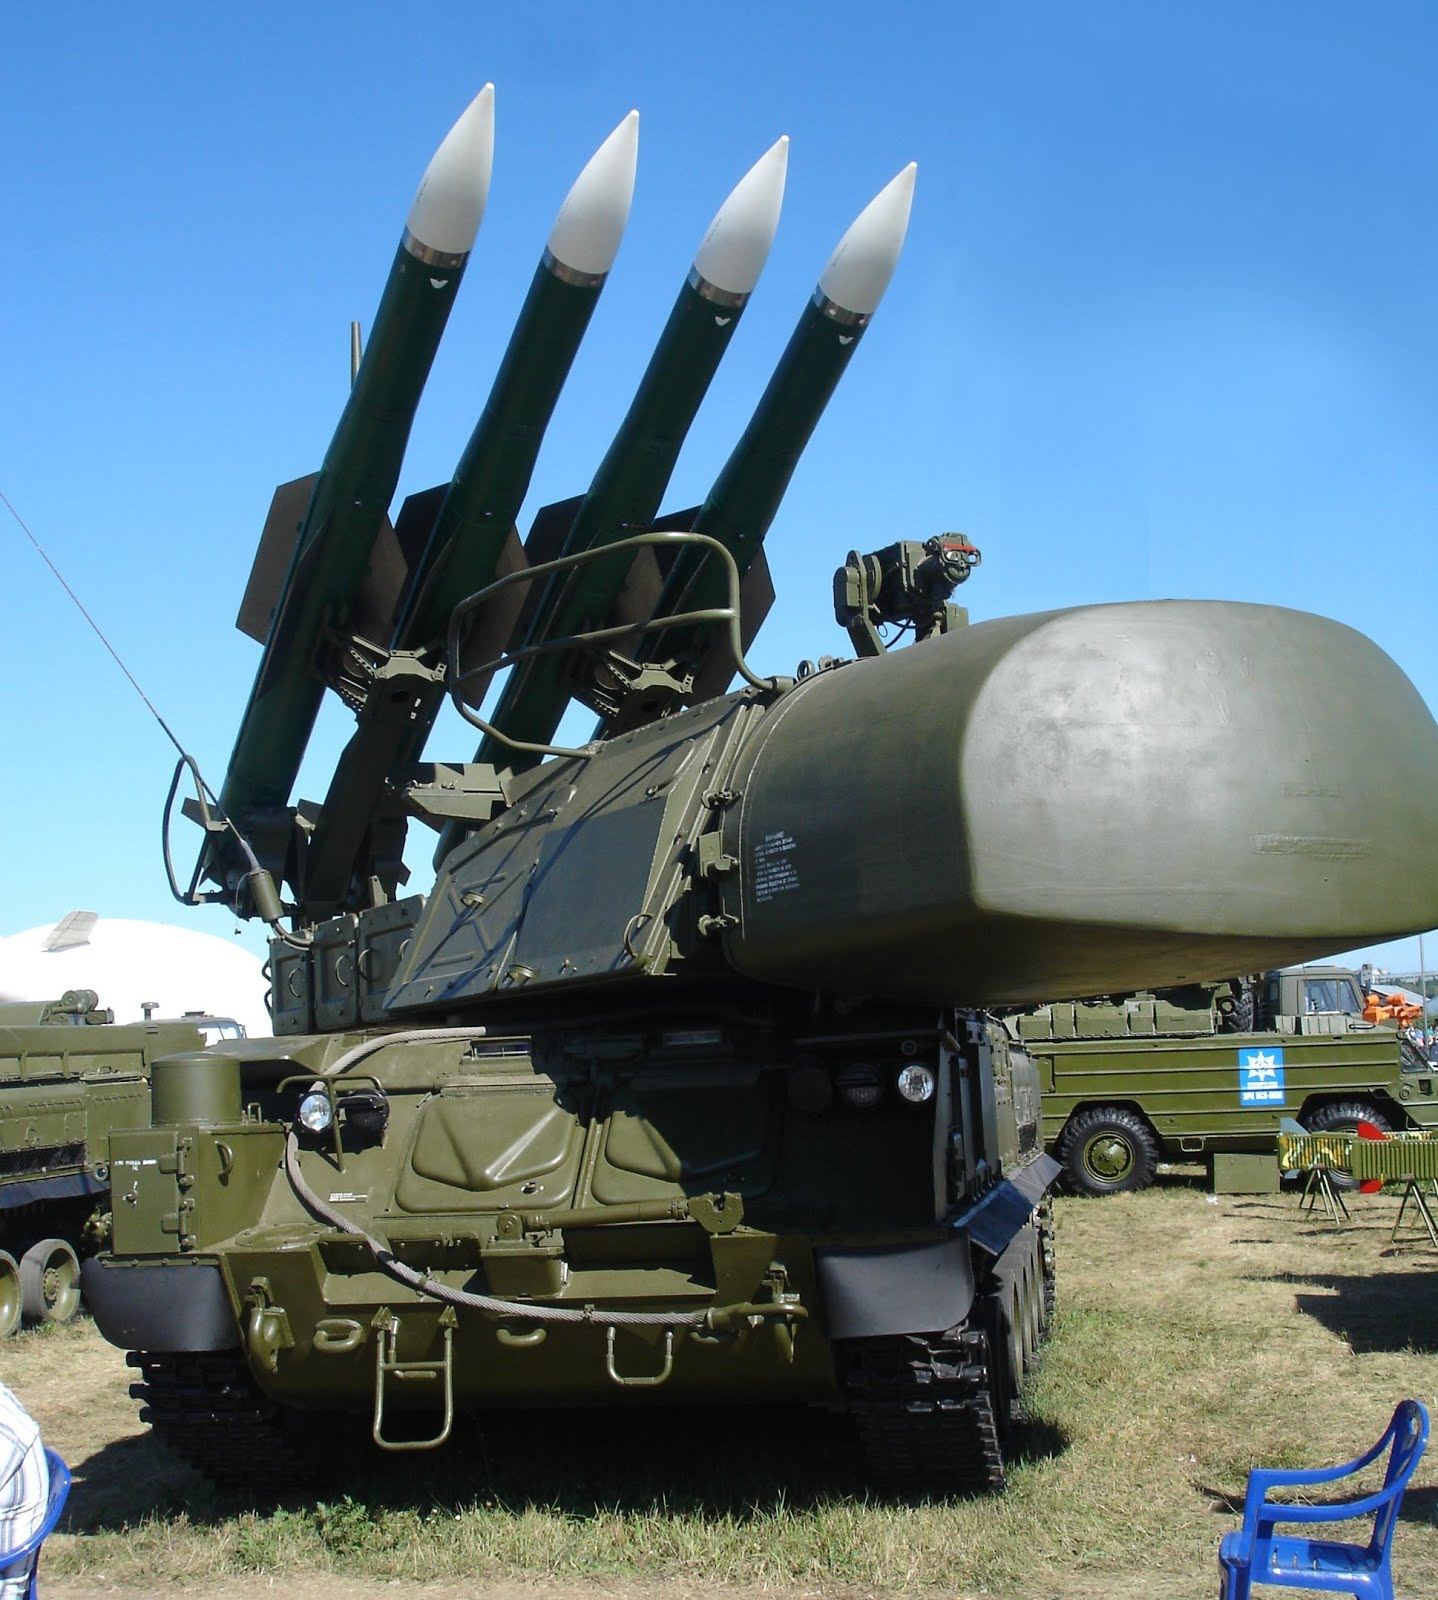 Syria has received a division of anti-aircraft missile system S-300 55